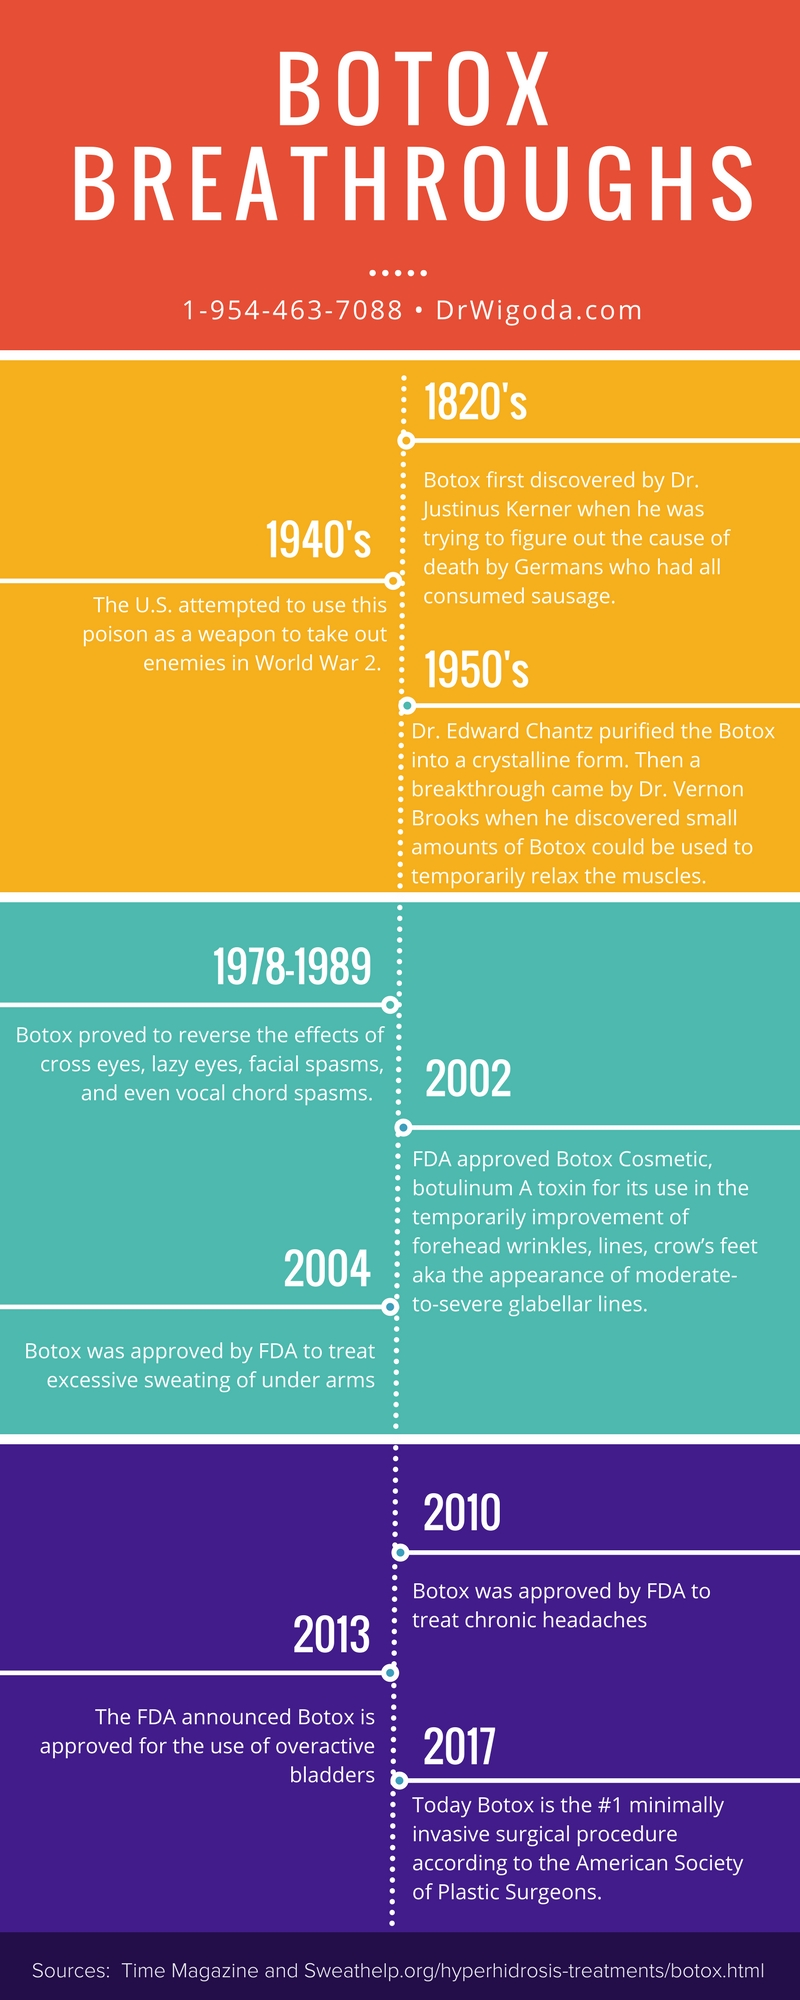 botox breakthrough history timeline ft lauderdale dr wigoda